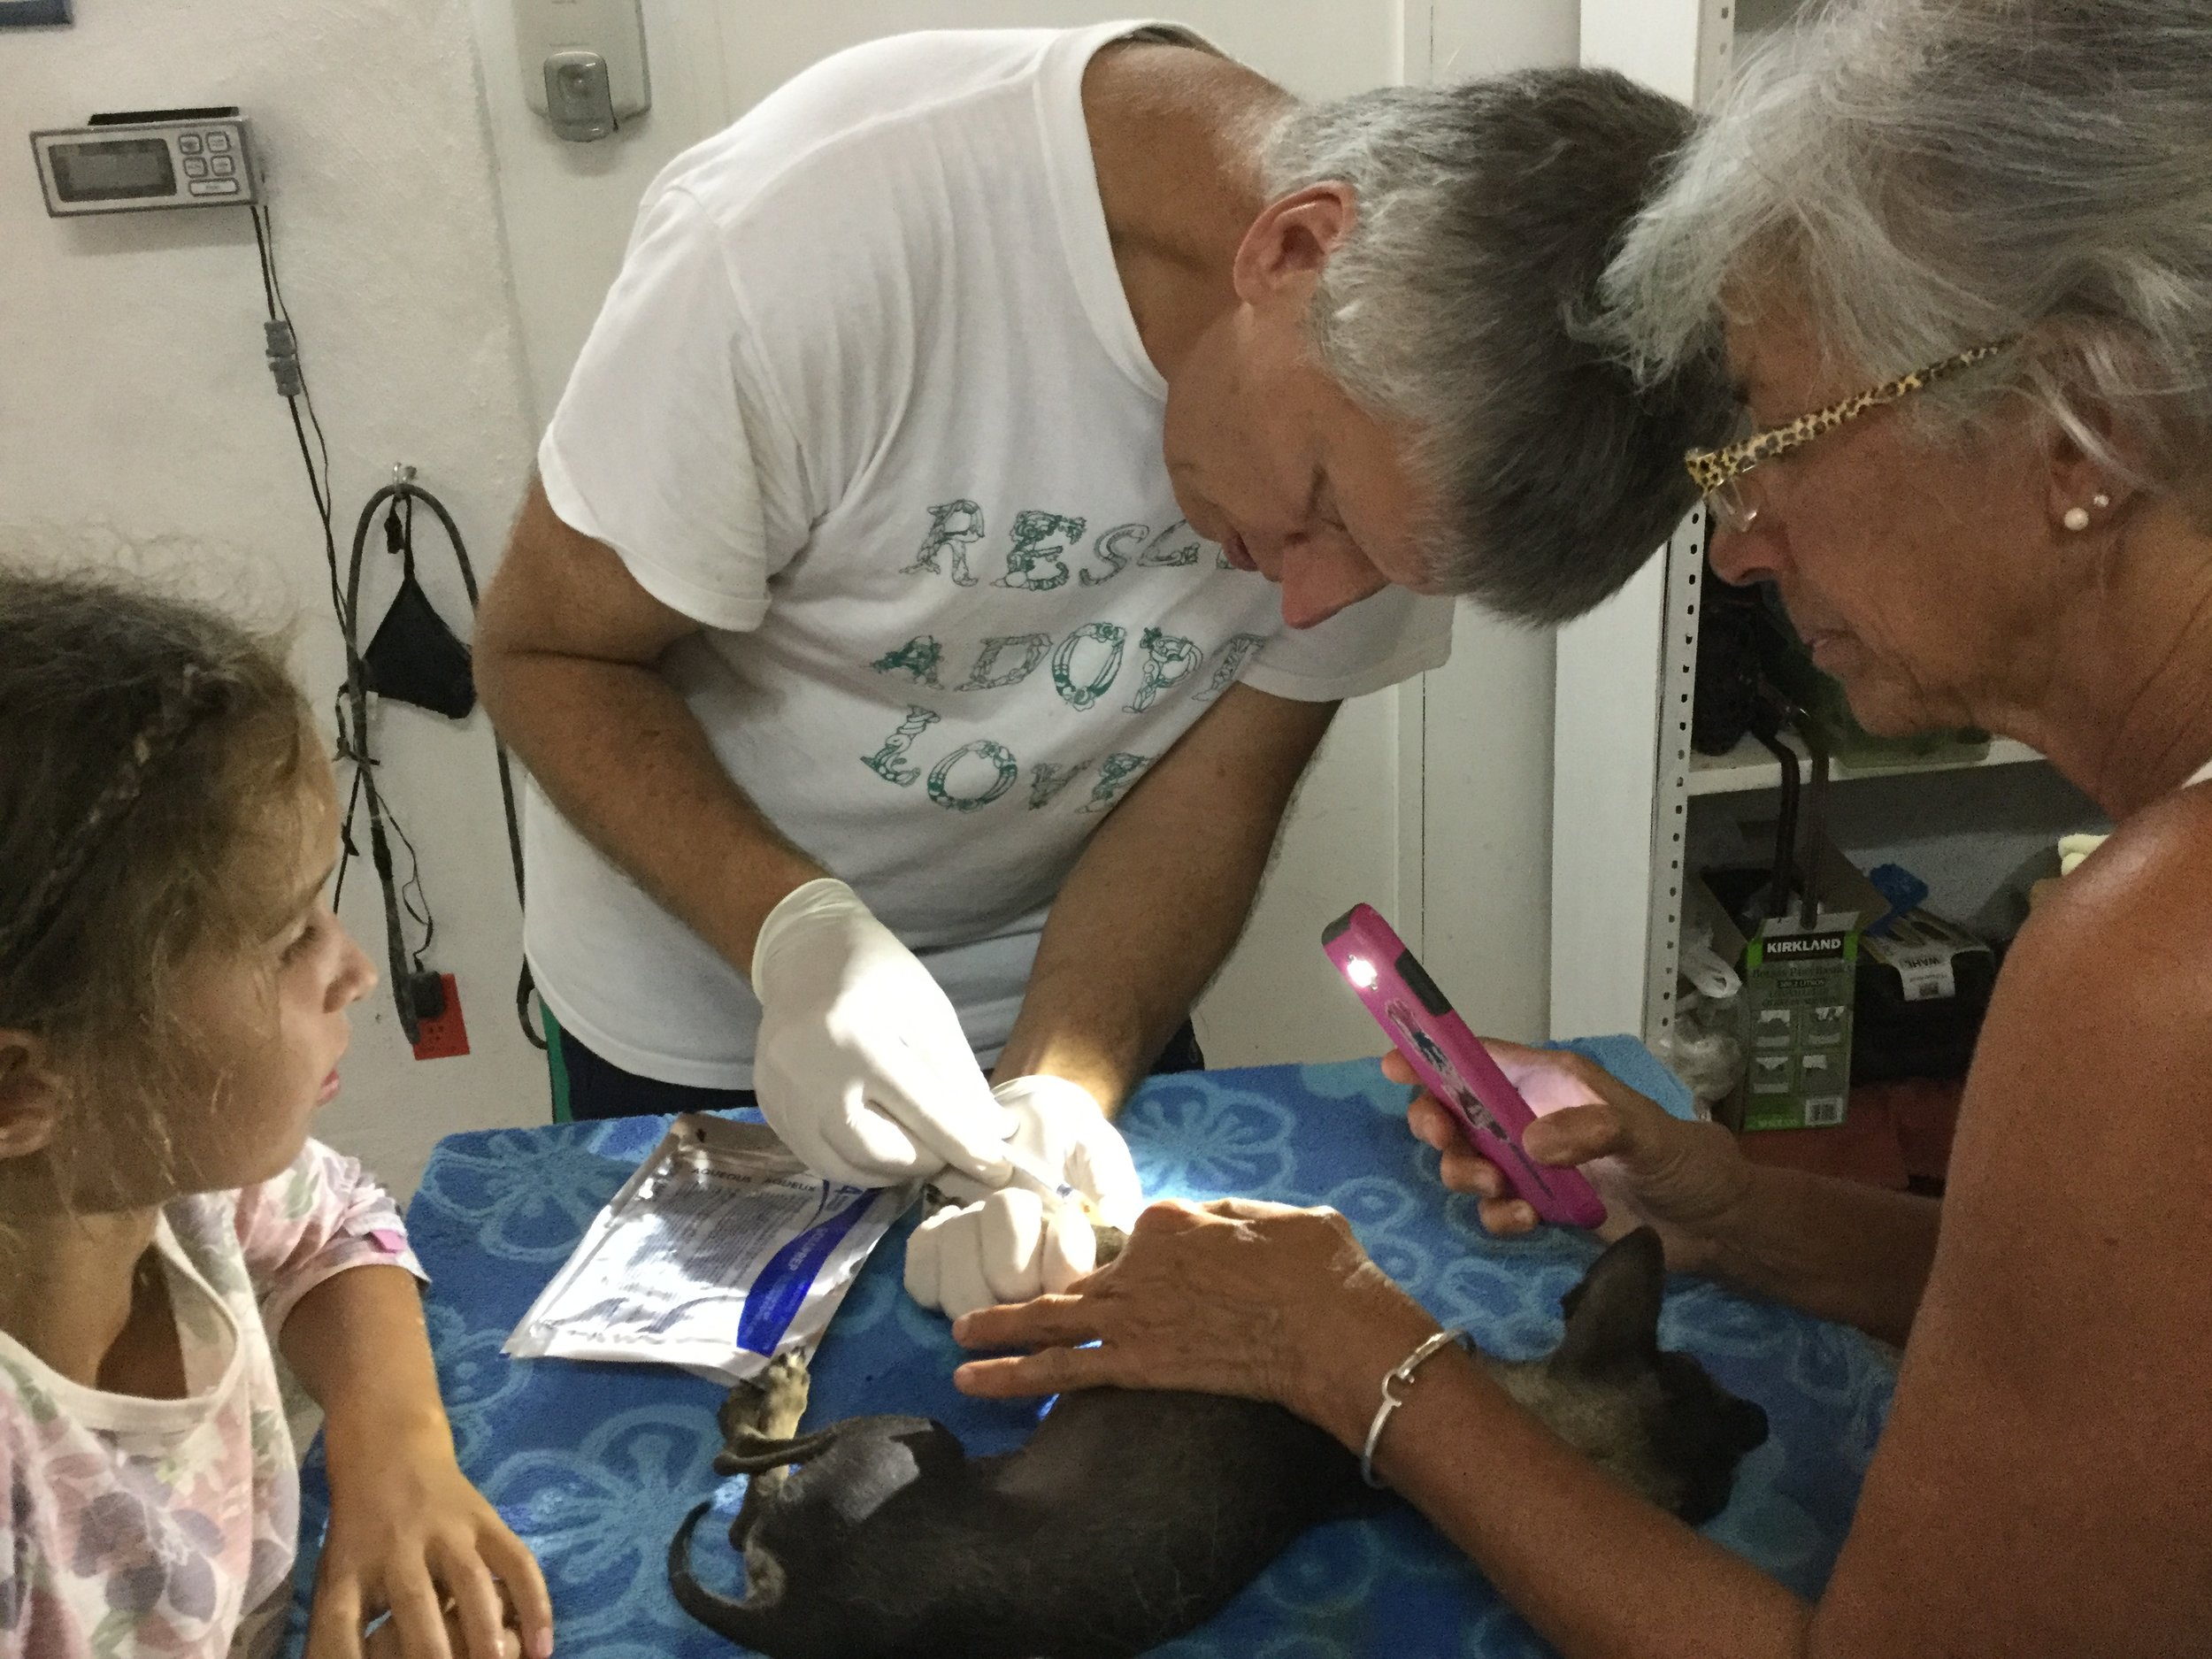 Here Dr. Rob is looking for a vein in a chihuahua. He needed a bit more anesthetic since after neutering he also had some teeth taken out.  There are no exam lights so Karen used her phone flashlight.